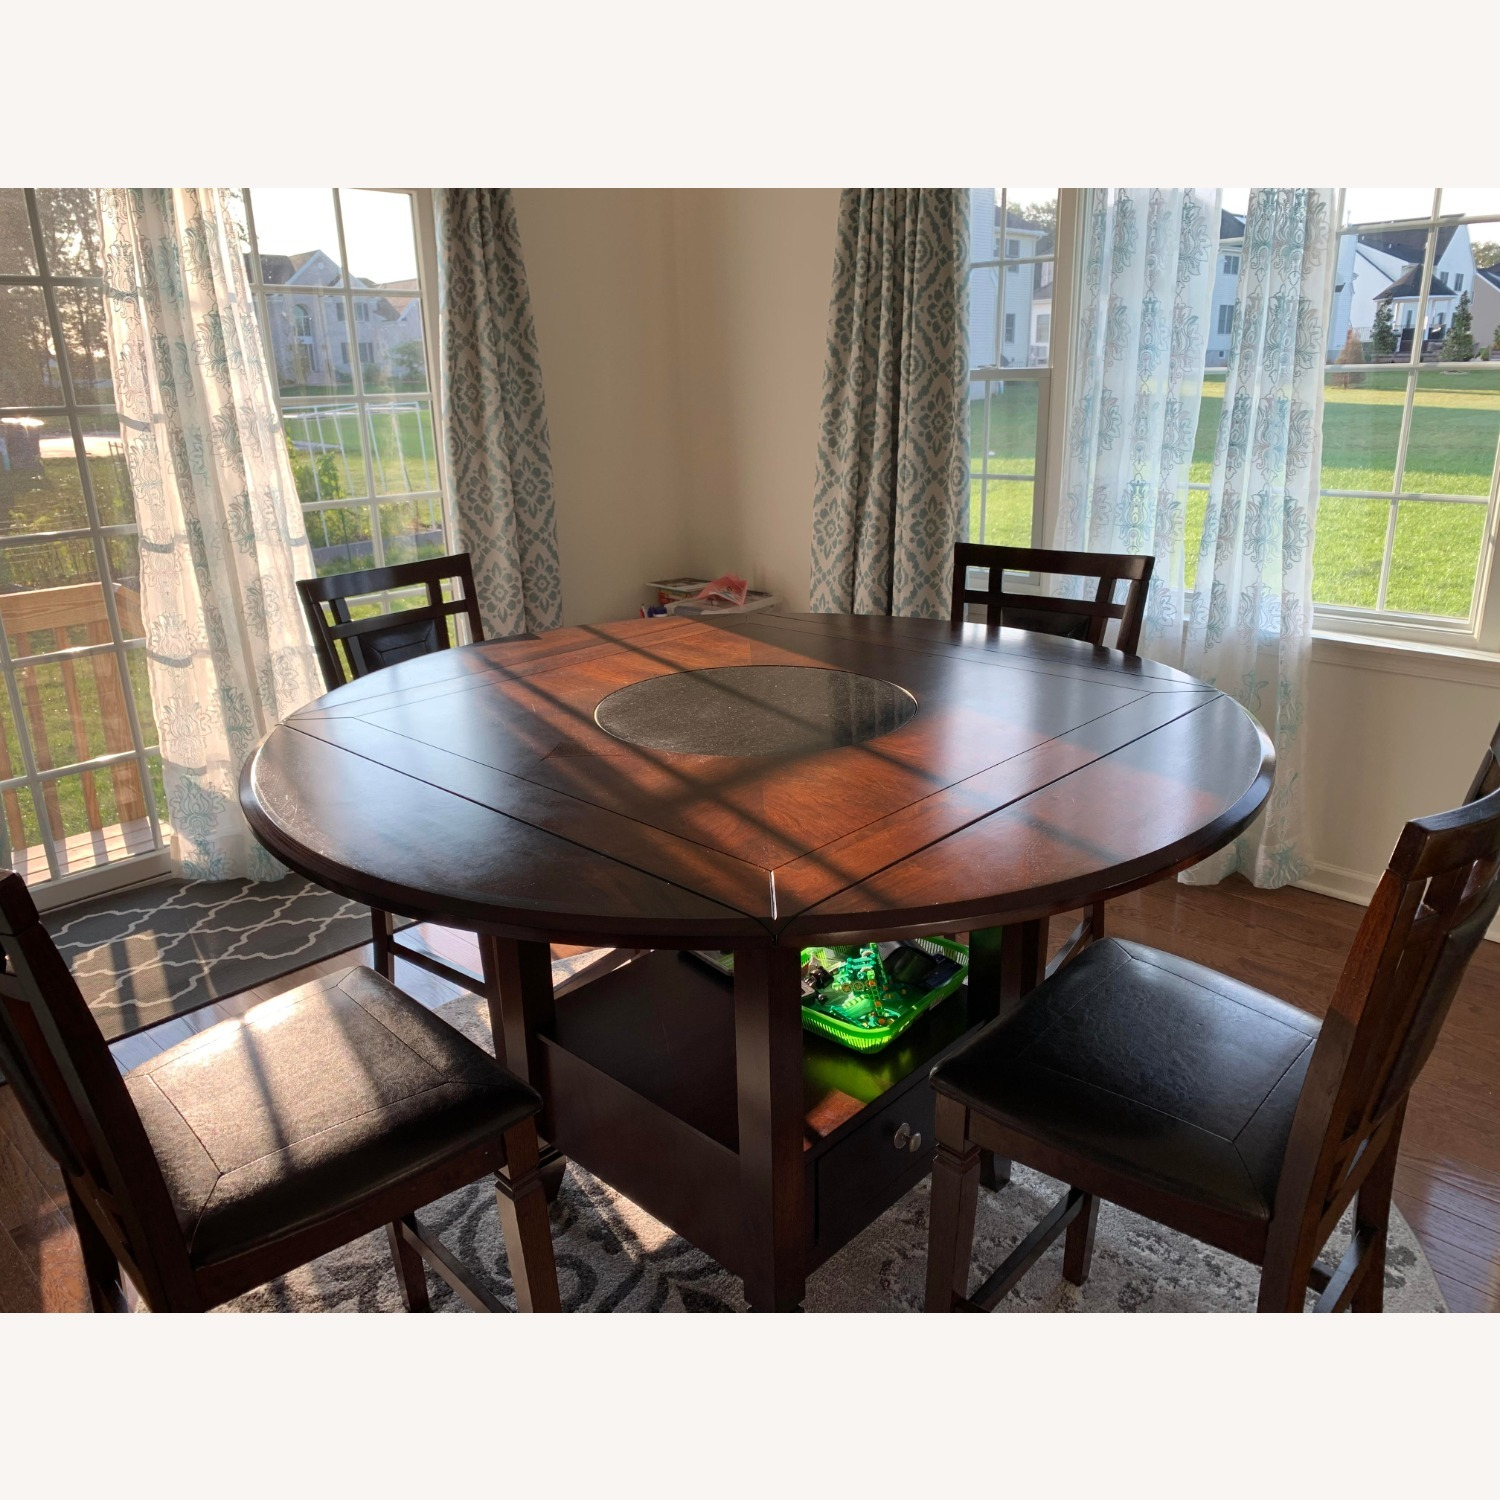 5 Piece Drop Leaf Counter Height Dining Set - image-2